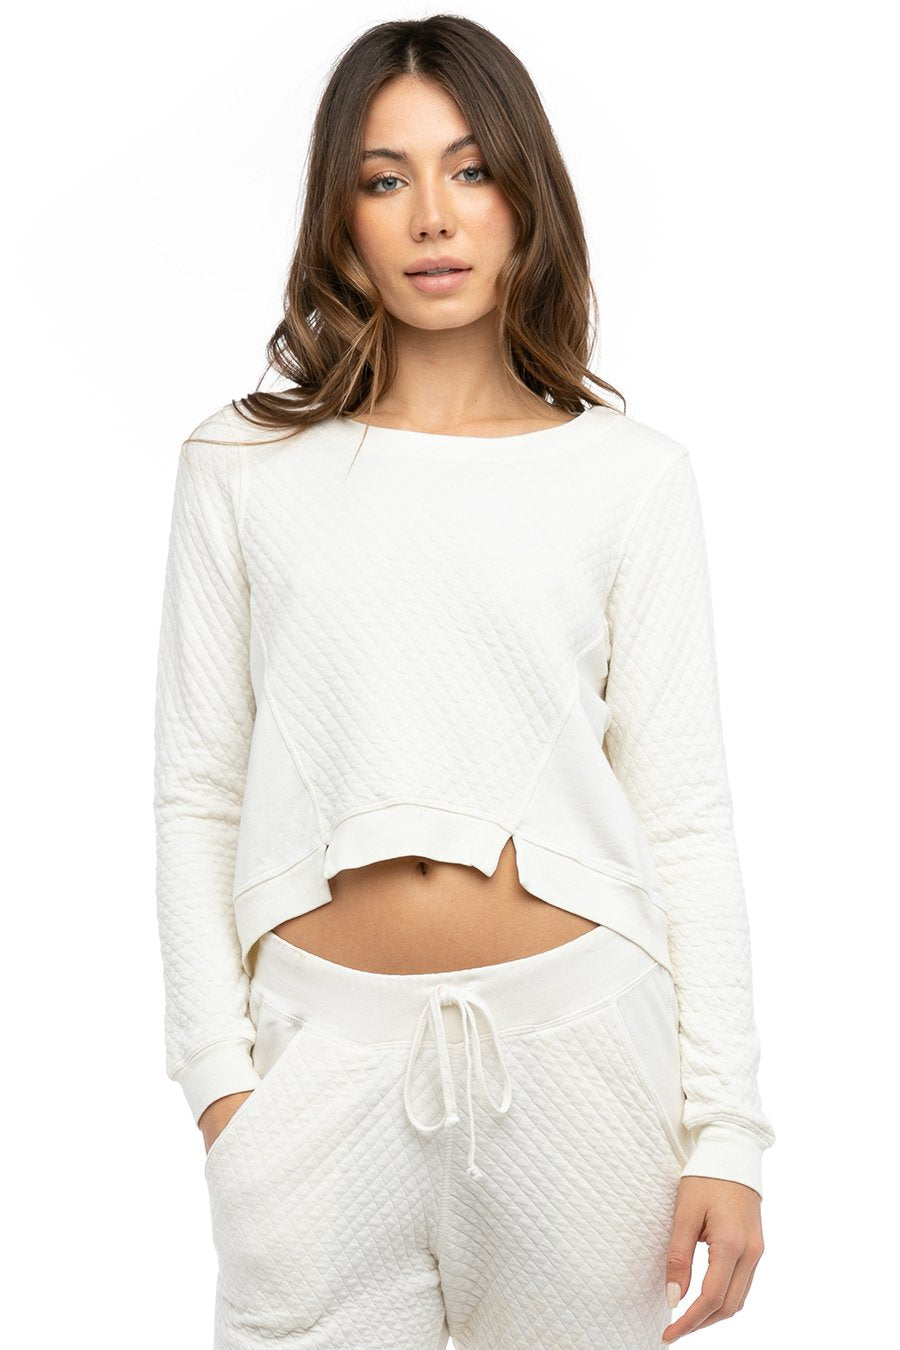 Hard Tail Forever Notch Front Quilted Sweatshirt - Cream - L